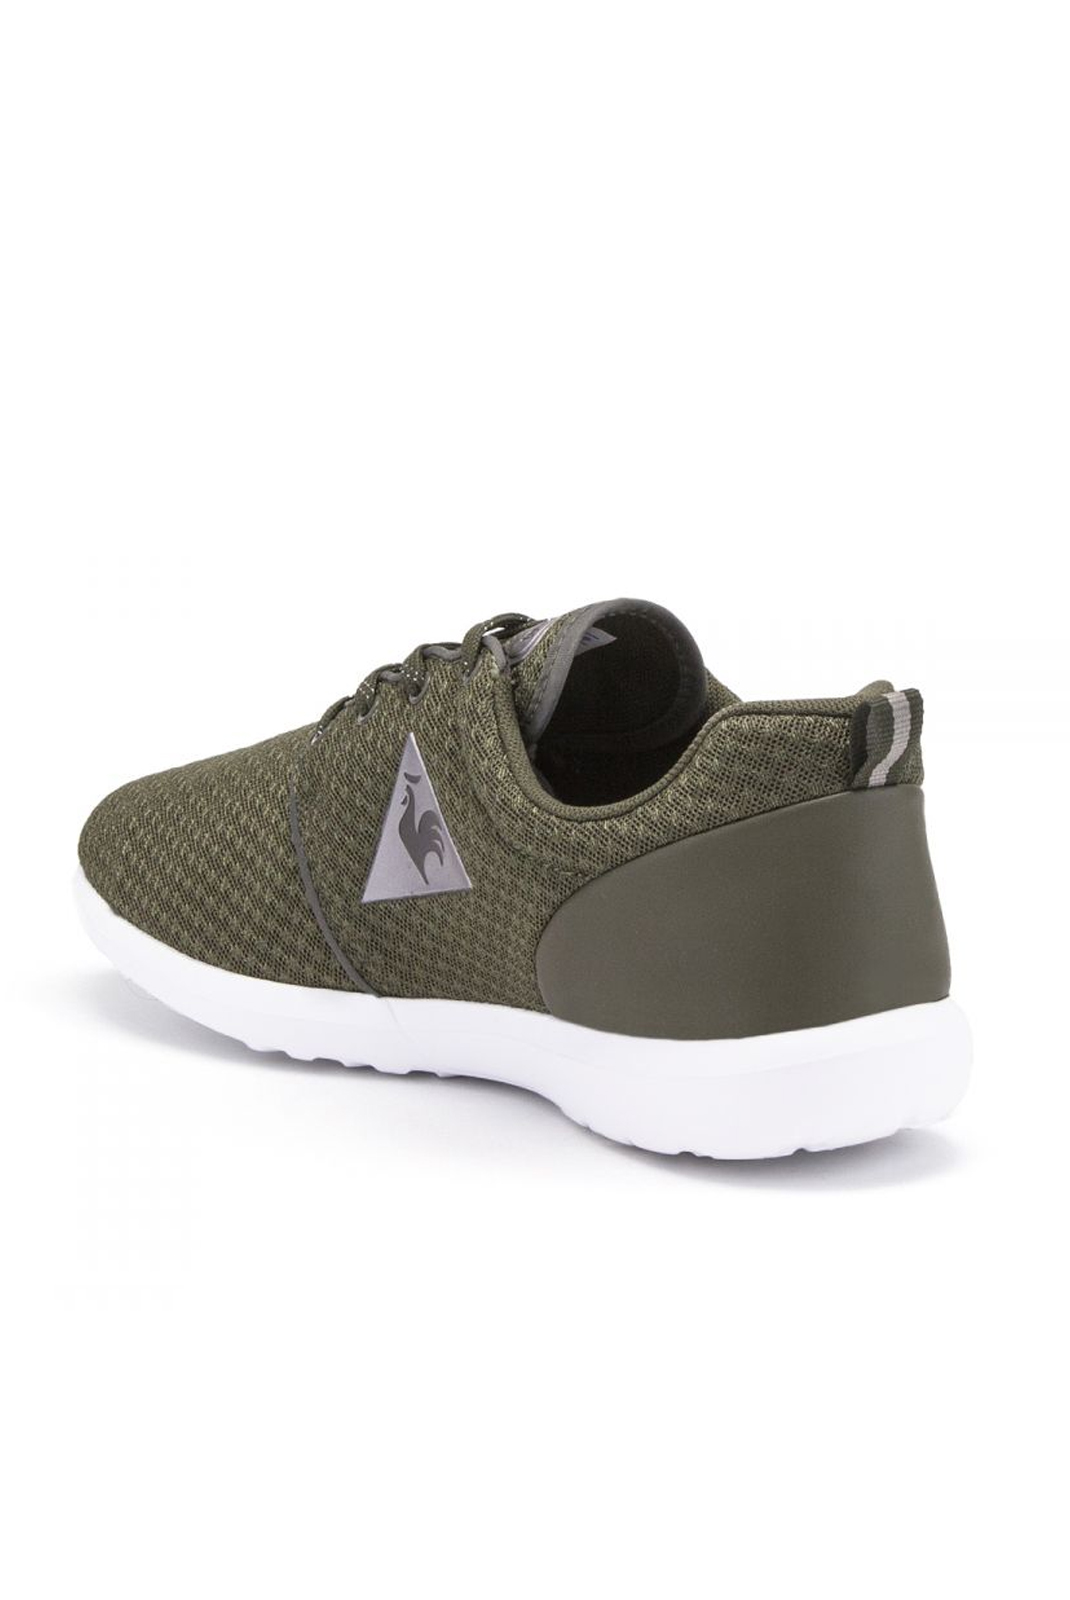 Baskets / Sneakers  Le coq sportif 1910785 DYNACOMF METALLIC OLIVE NIGHT / OLD SILVER